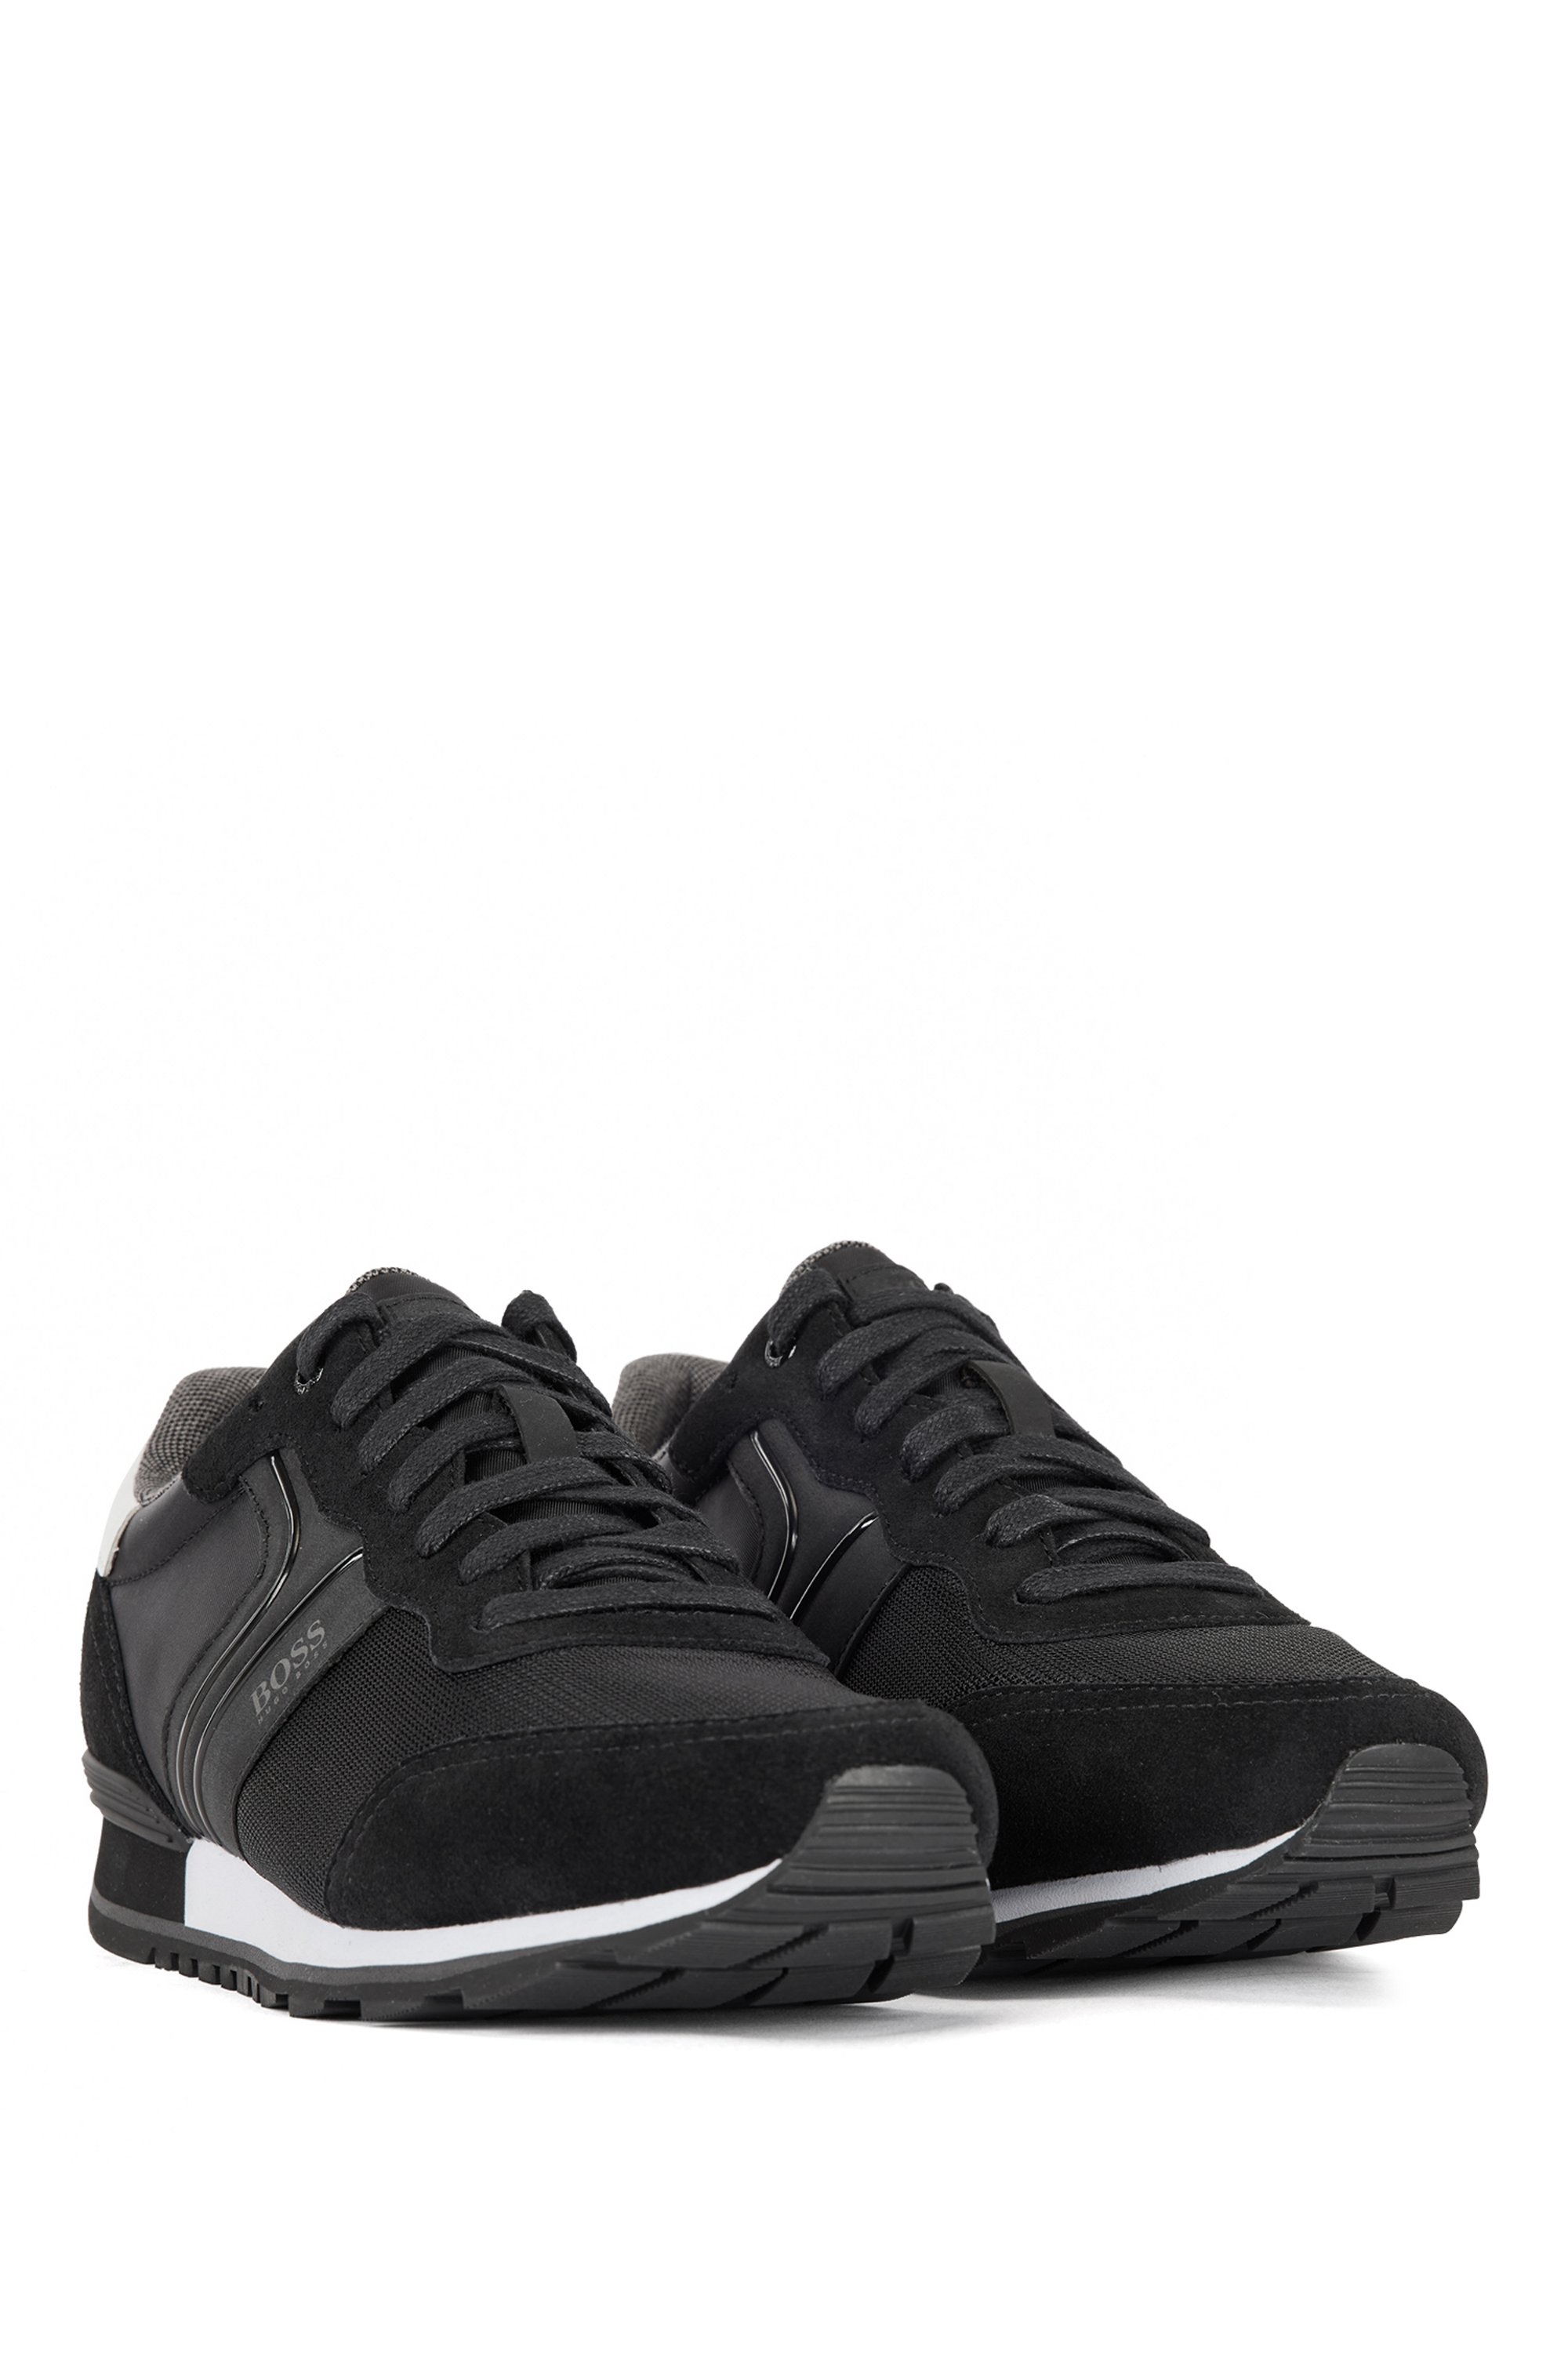 Running-style trainers with suede and mesh